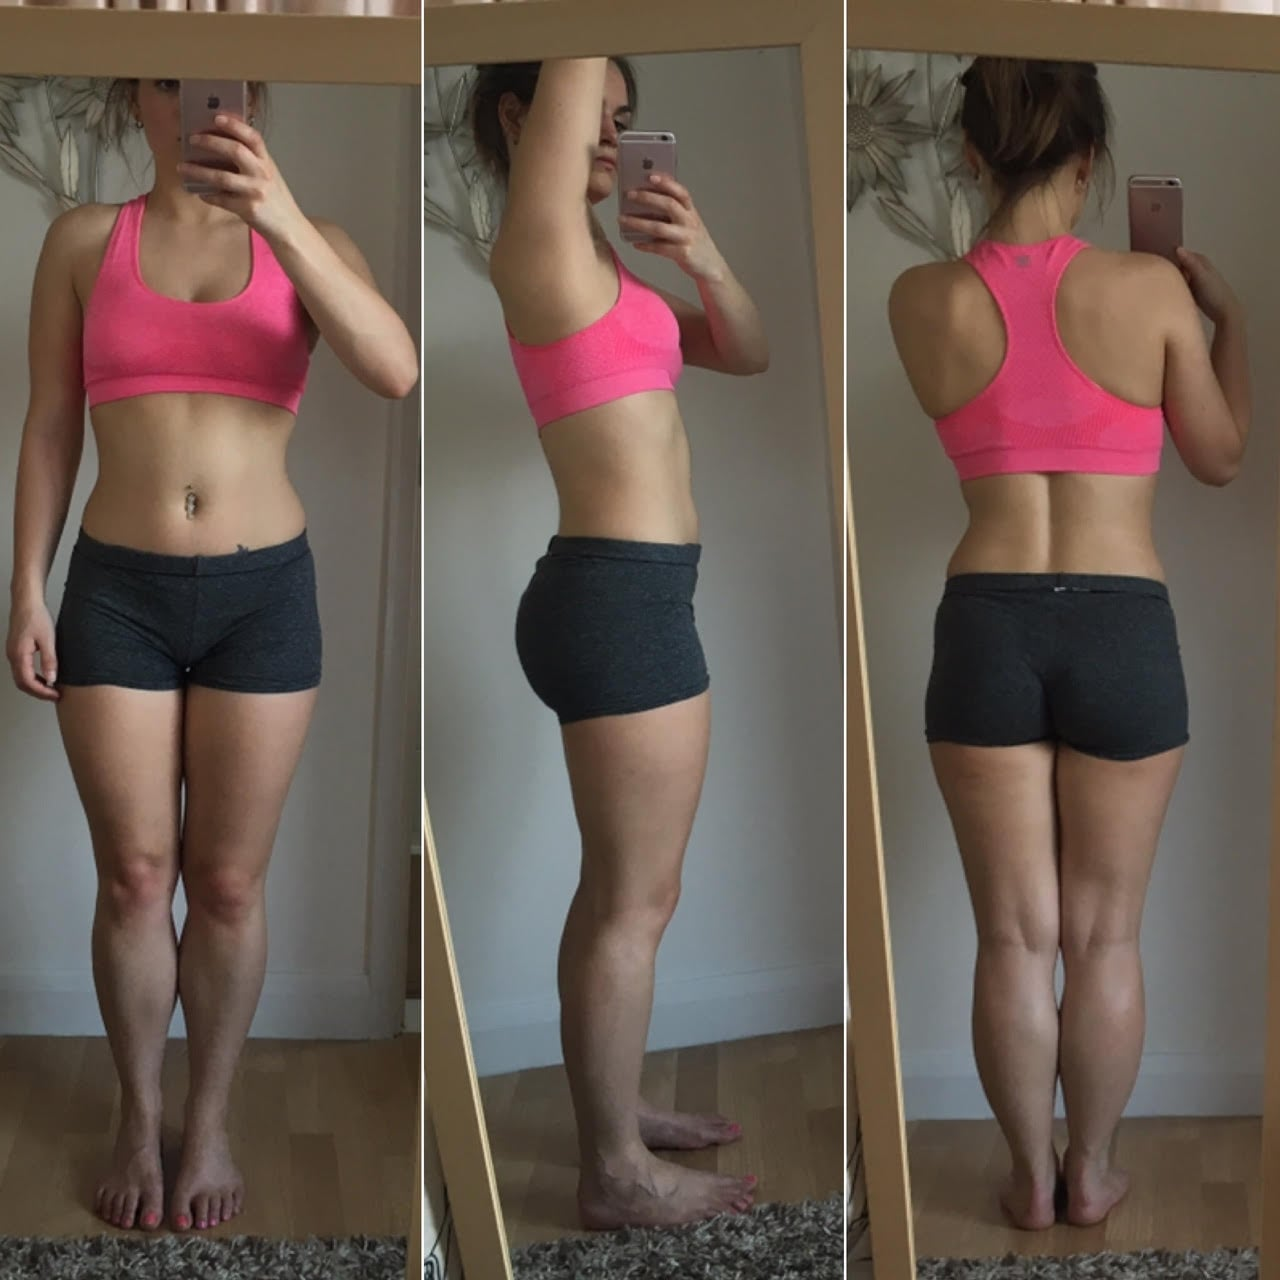 When She Began She Weighed About 54 Kg And Was 22 Percent Body Fat Jenn Says I Dont Regularly Weigh Myself As I Dont Believe What I Weigh Is Of Much